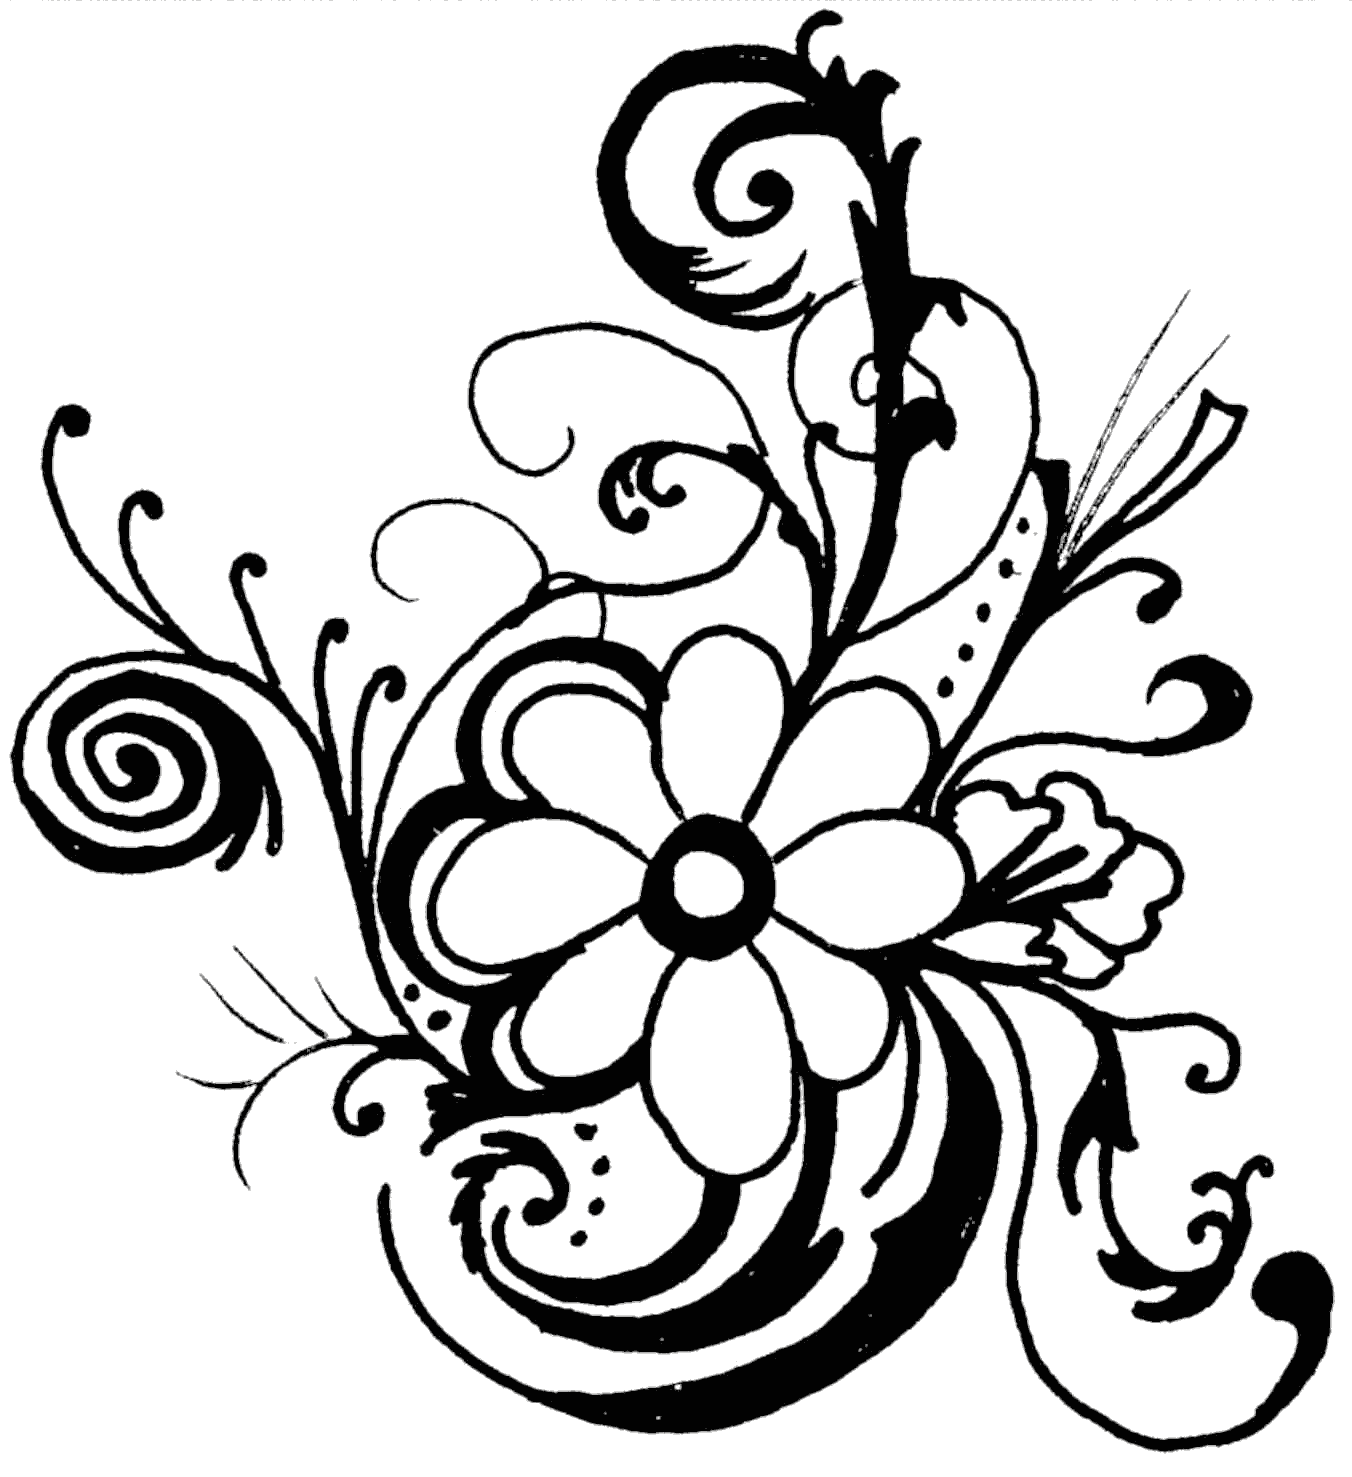 Free Line Art Flower Download Free Clip Art Free Clip Art On Clipart Library